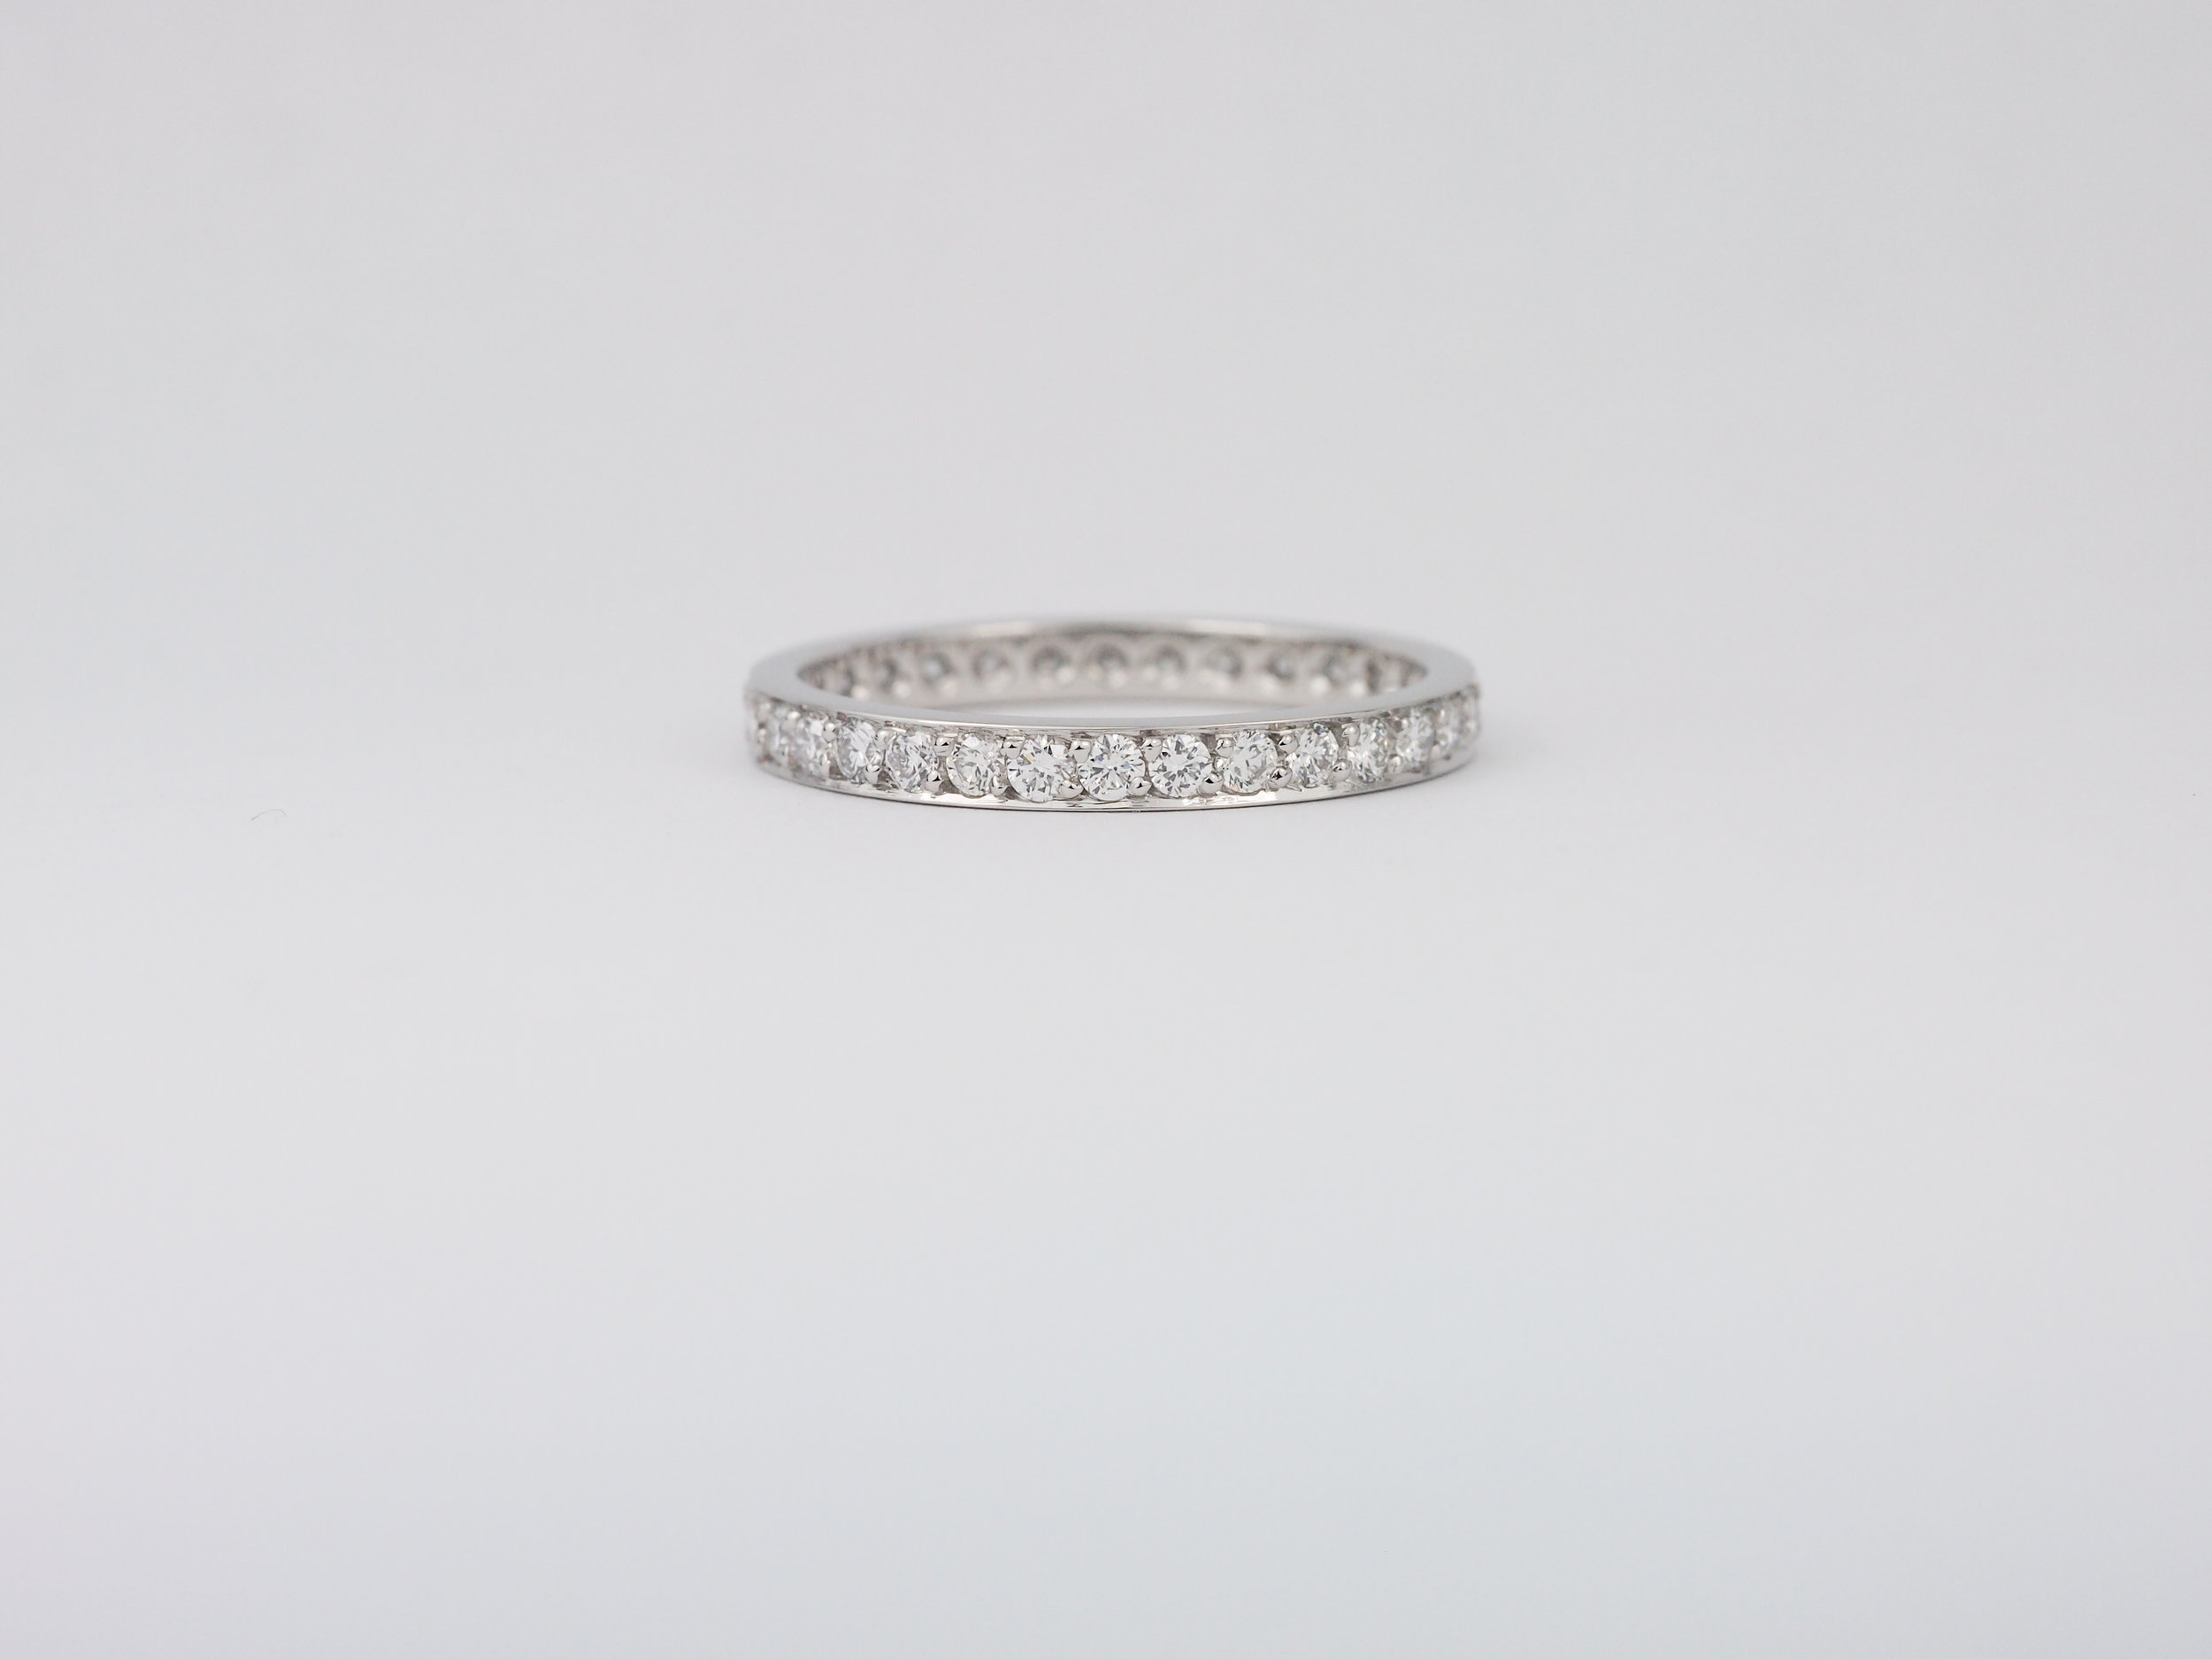 Pavé set diamond wedding band in platinum